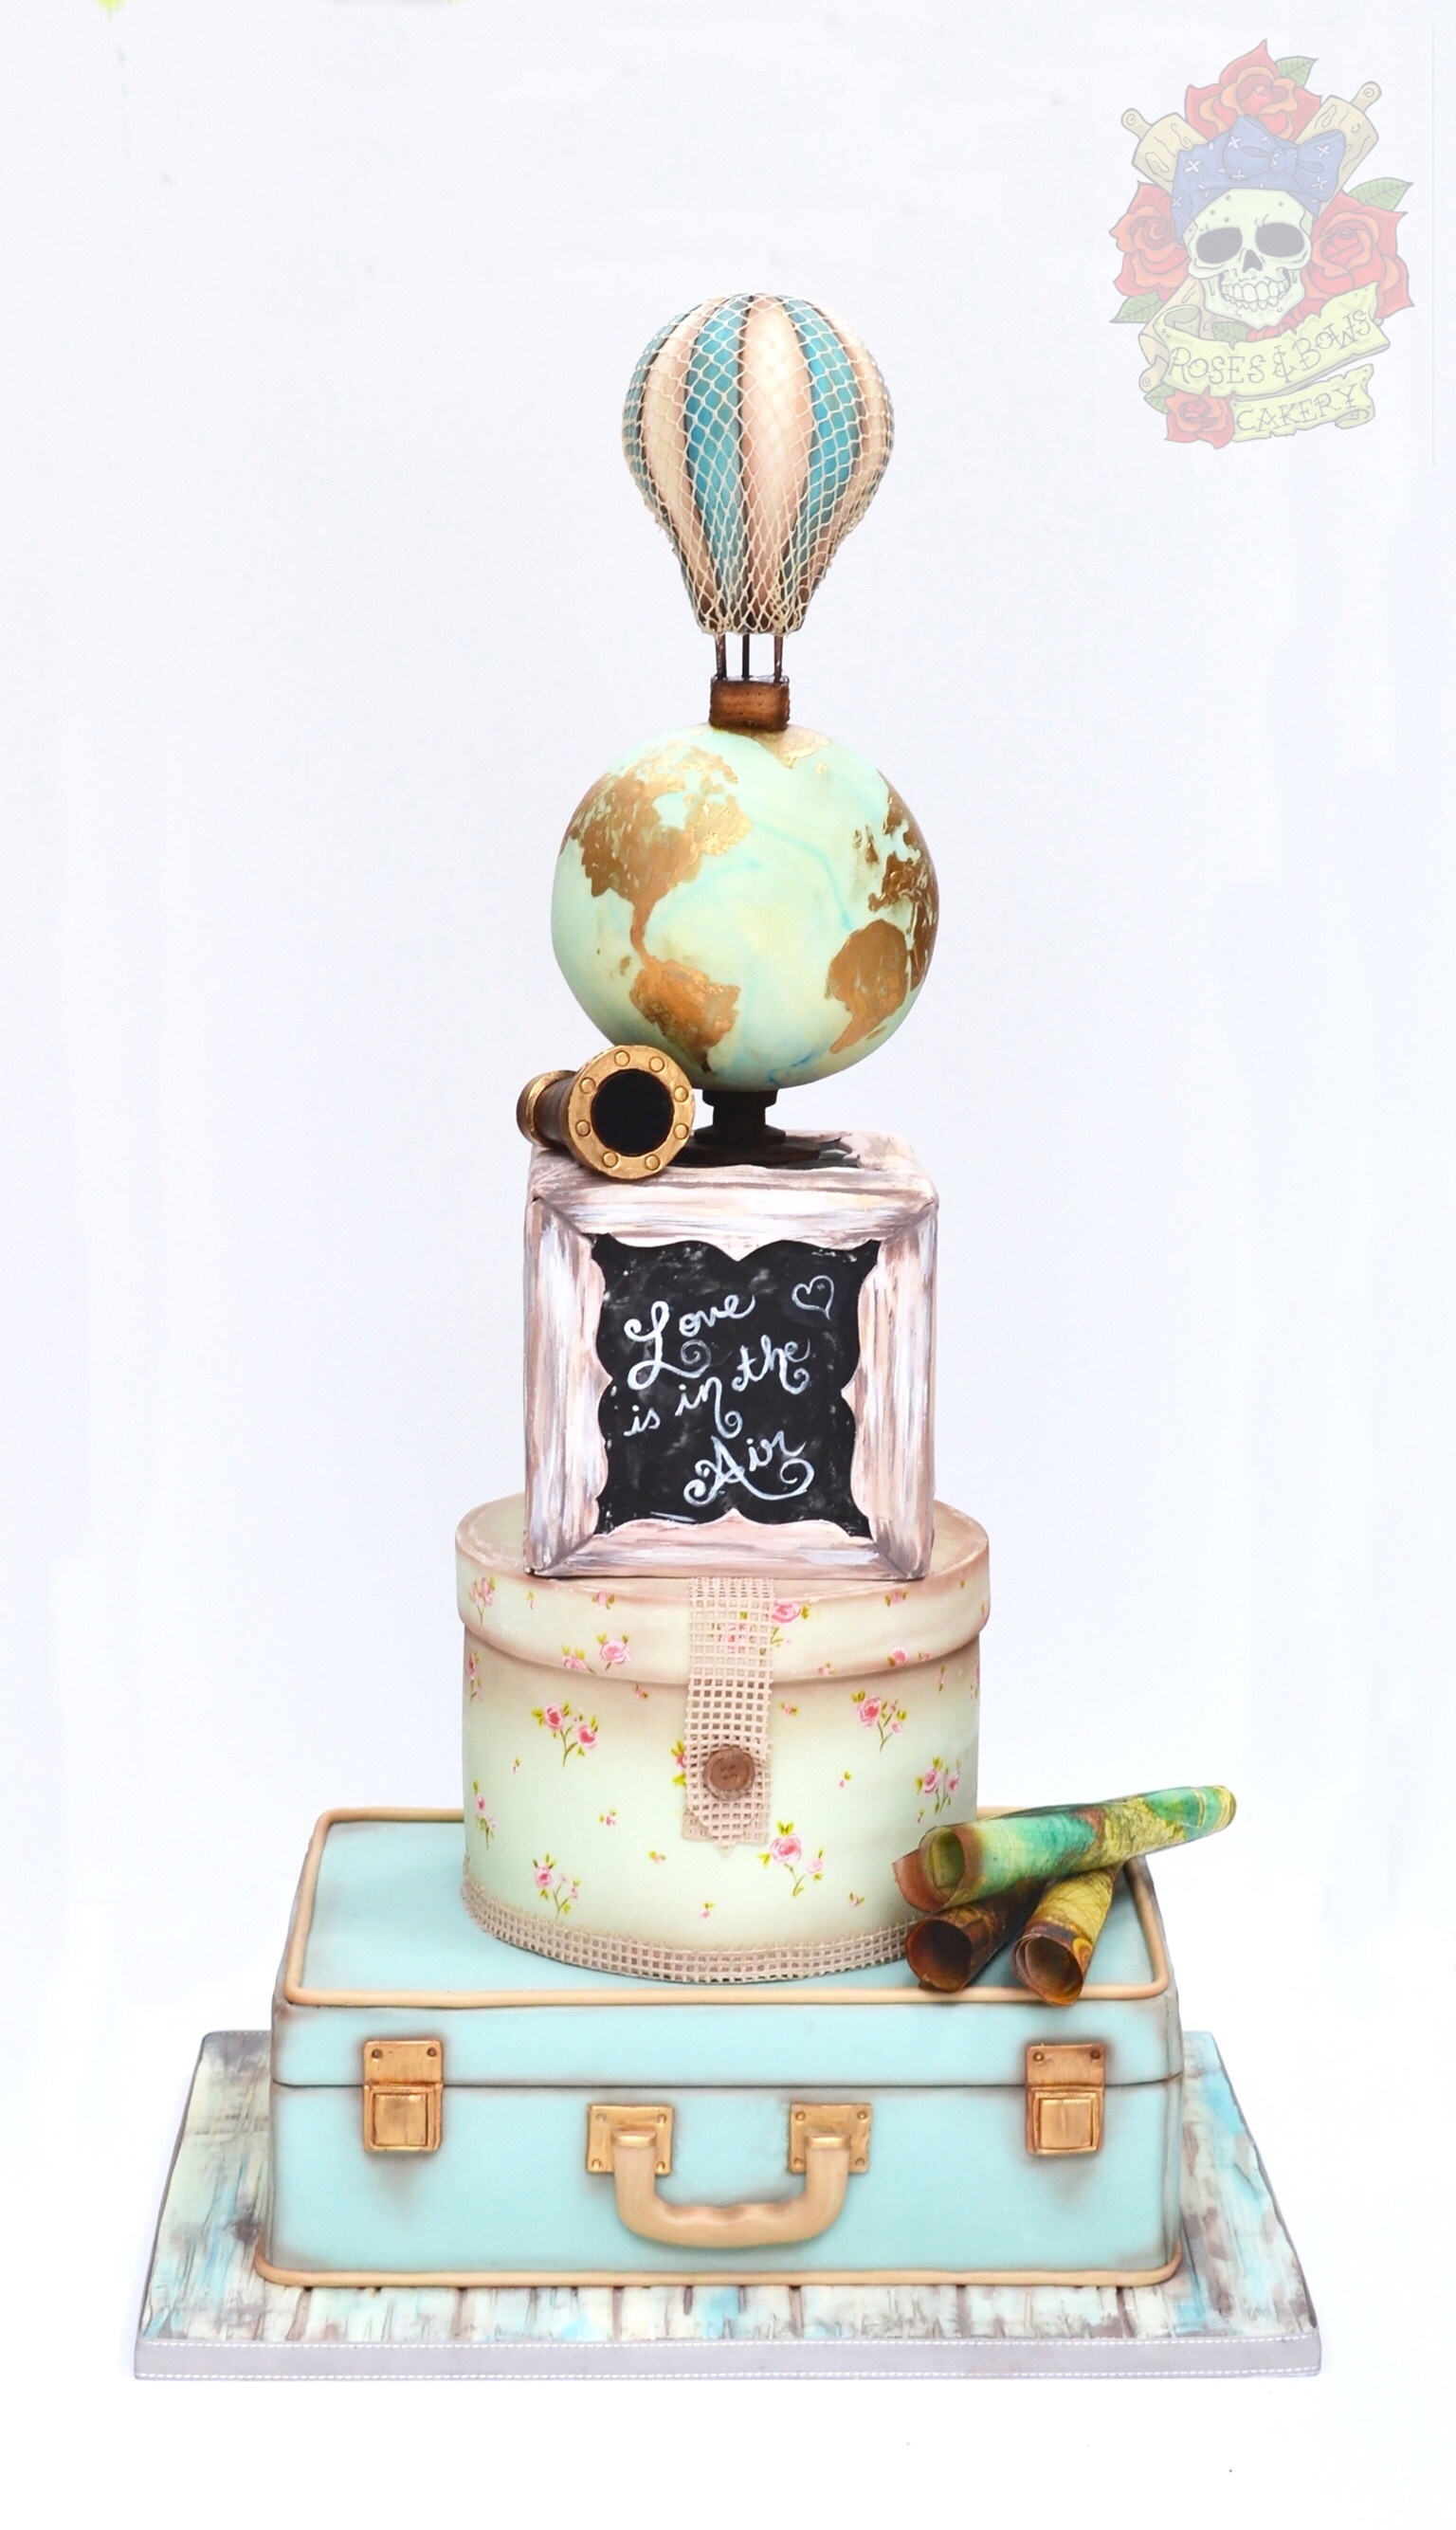 Around the world traveling wedding cake